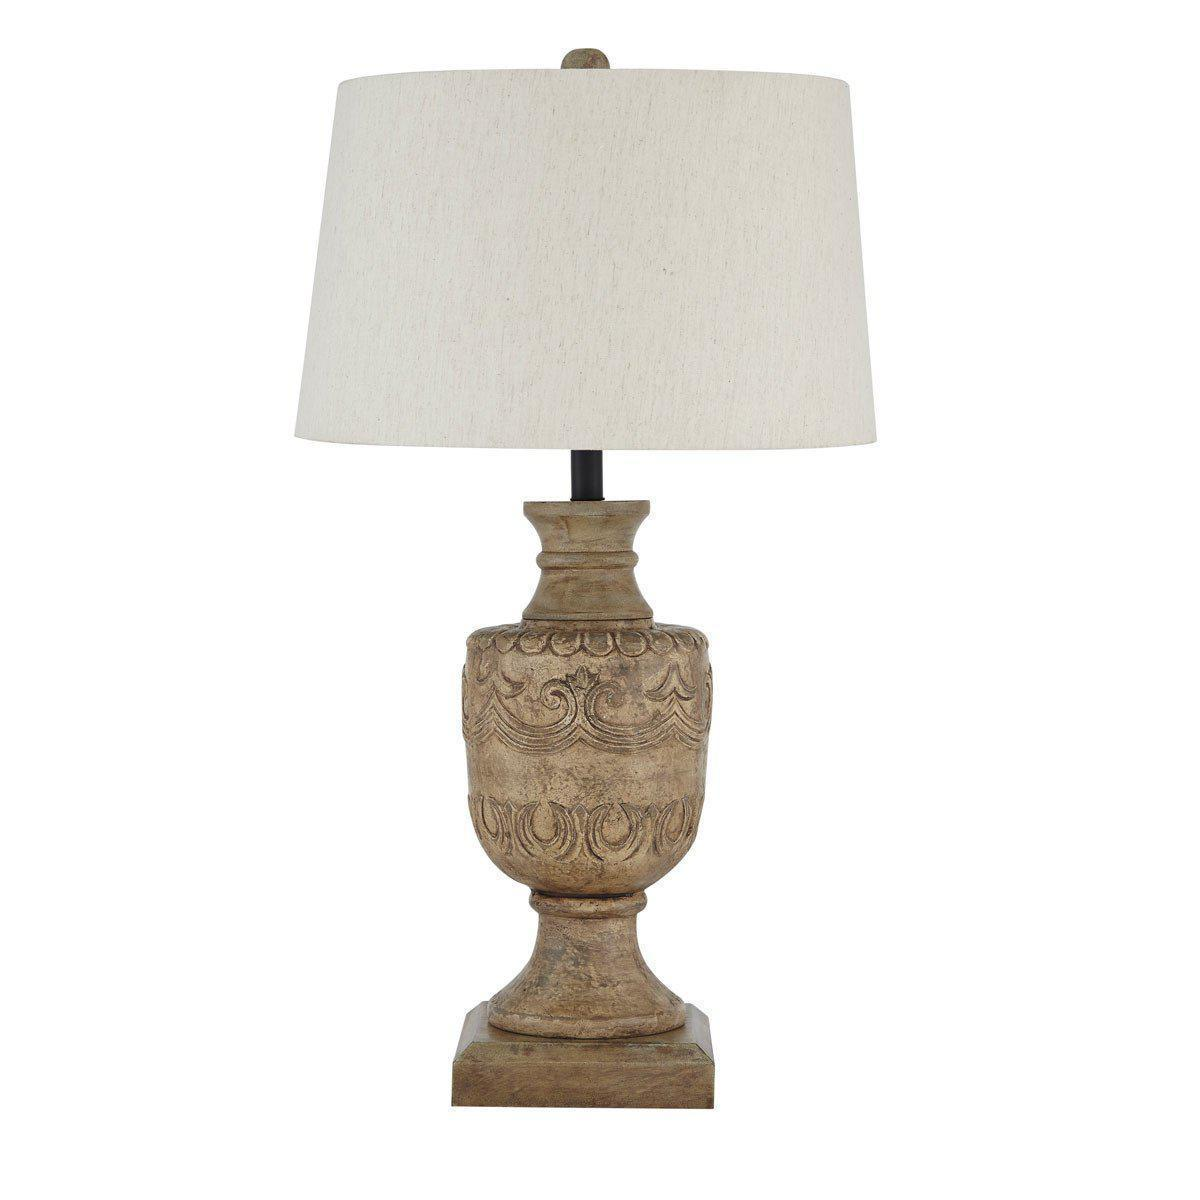 Shobana Table Lamp